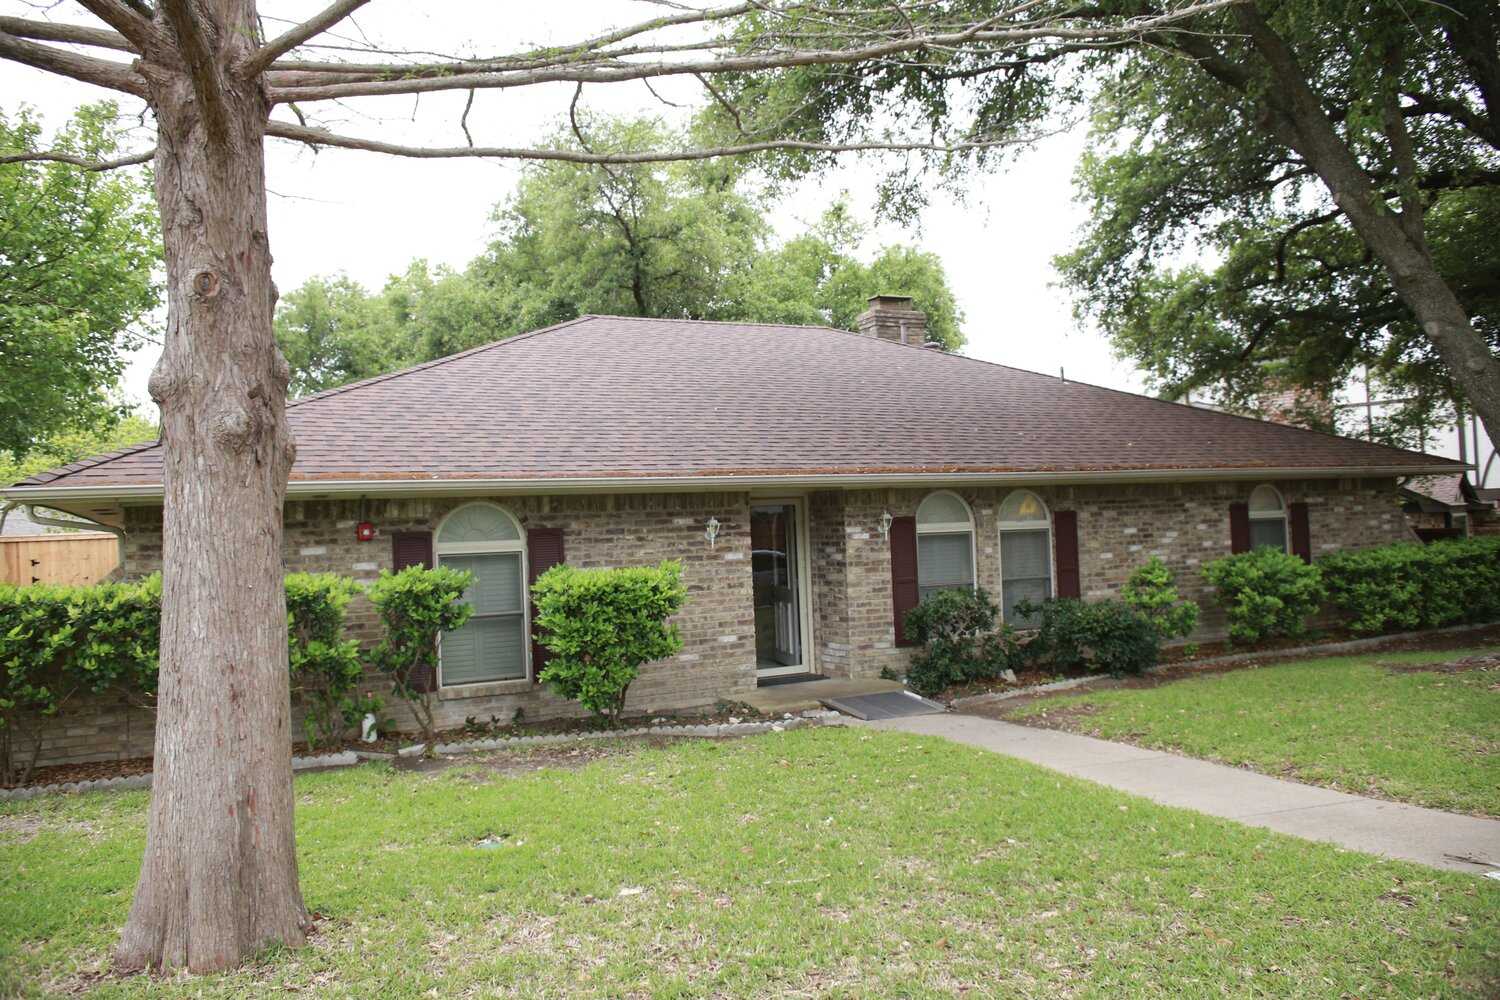 One of the residential houses in Dallas where adults with special needs are able to live independently. - PHOTOS BY JAN OSBORN